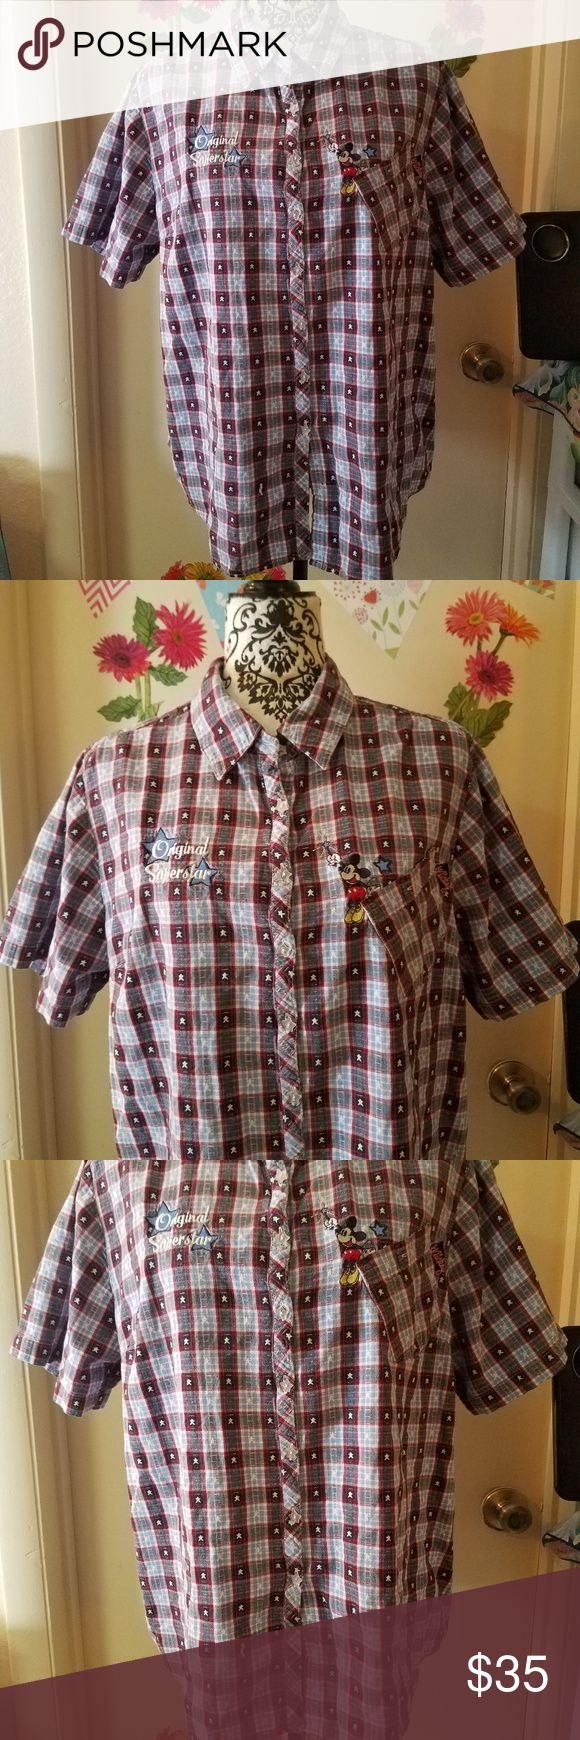 "RARE JERRY LEIGH Disney Mickey Mouse Plus 18W/20W RARE JERRY LEIGH Disney Original Superstar Mickey Mouse Button Down Women Plus 18W/20W Excellent Used Condition   Beautiful checkered/plaid star button down   100% Cotton  Measurements:  Length: 26"" in Bust: 25"" in  Thank you for looking!  DI-T02 Jerry Leigh Disney Original Tops Button Down Shirts"